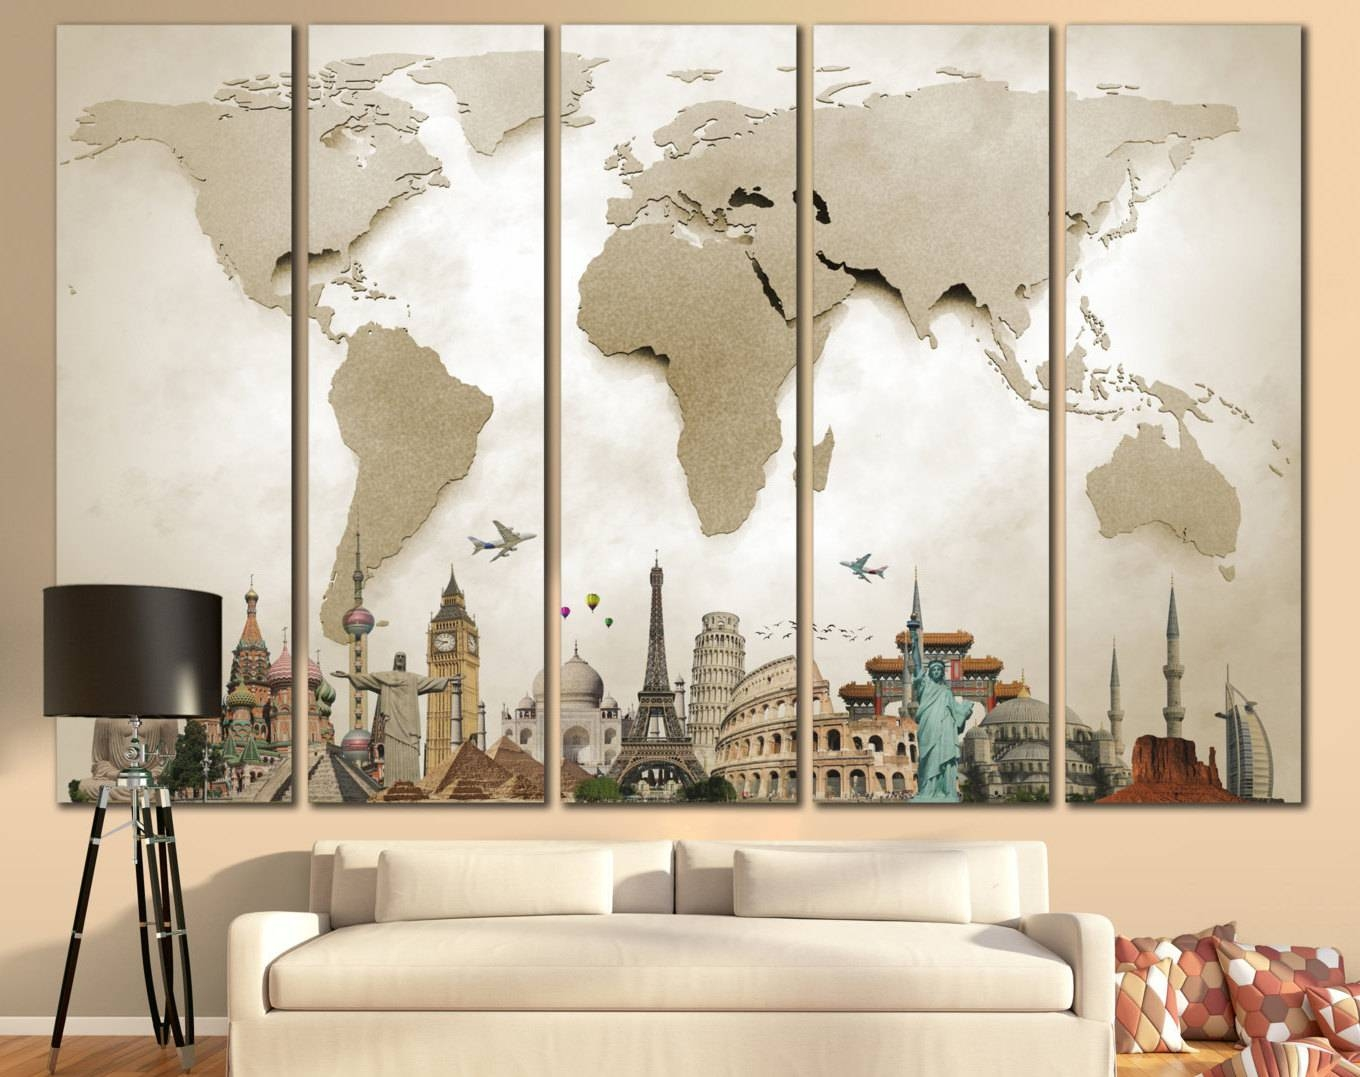 Decorating: Wonderful Word Of Wall Art And Modern White Sofa Plus In Most Current Cool Map Wall Art (View 6 of 20)